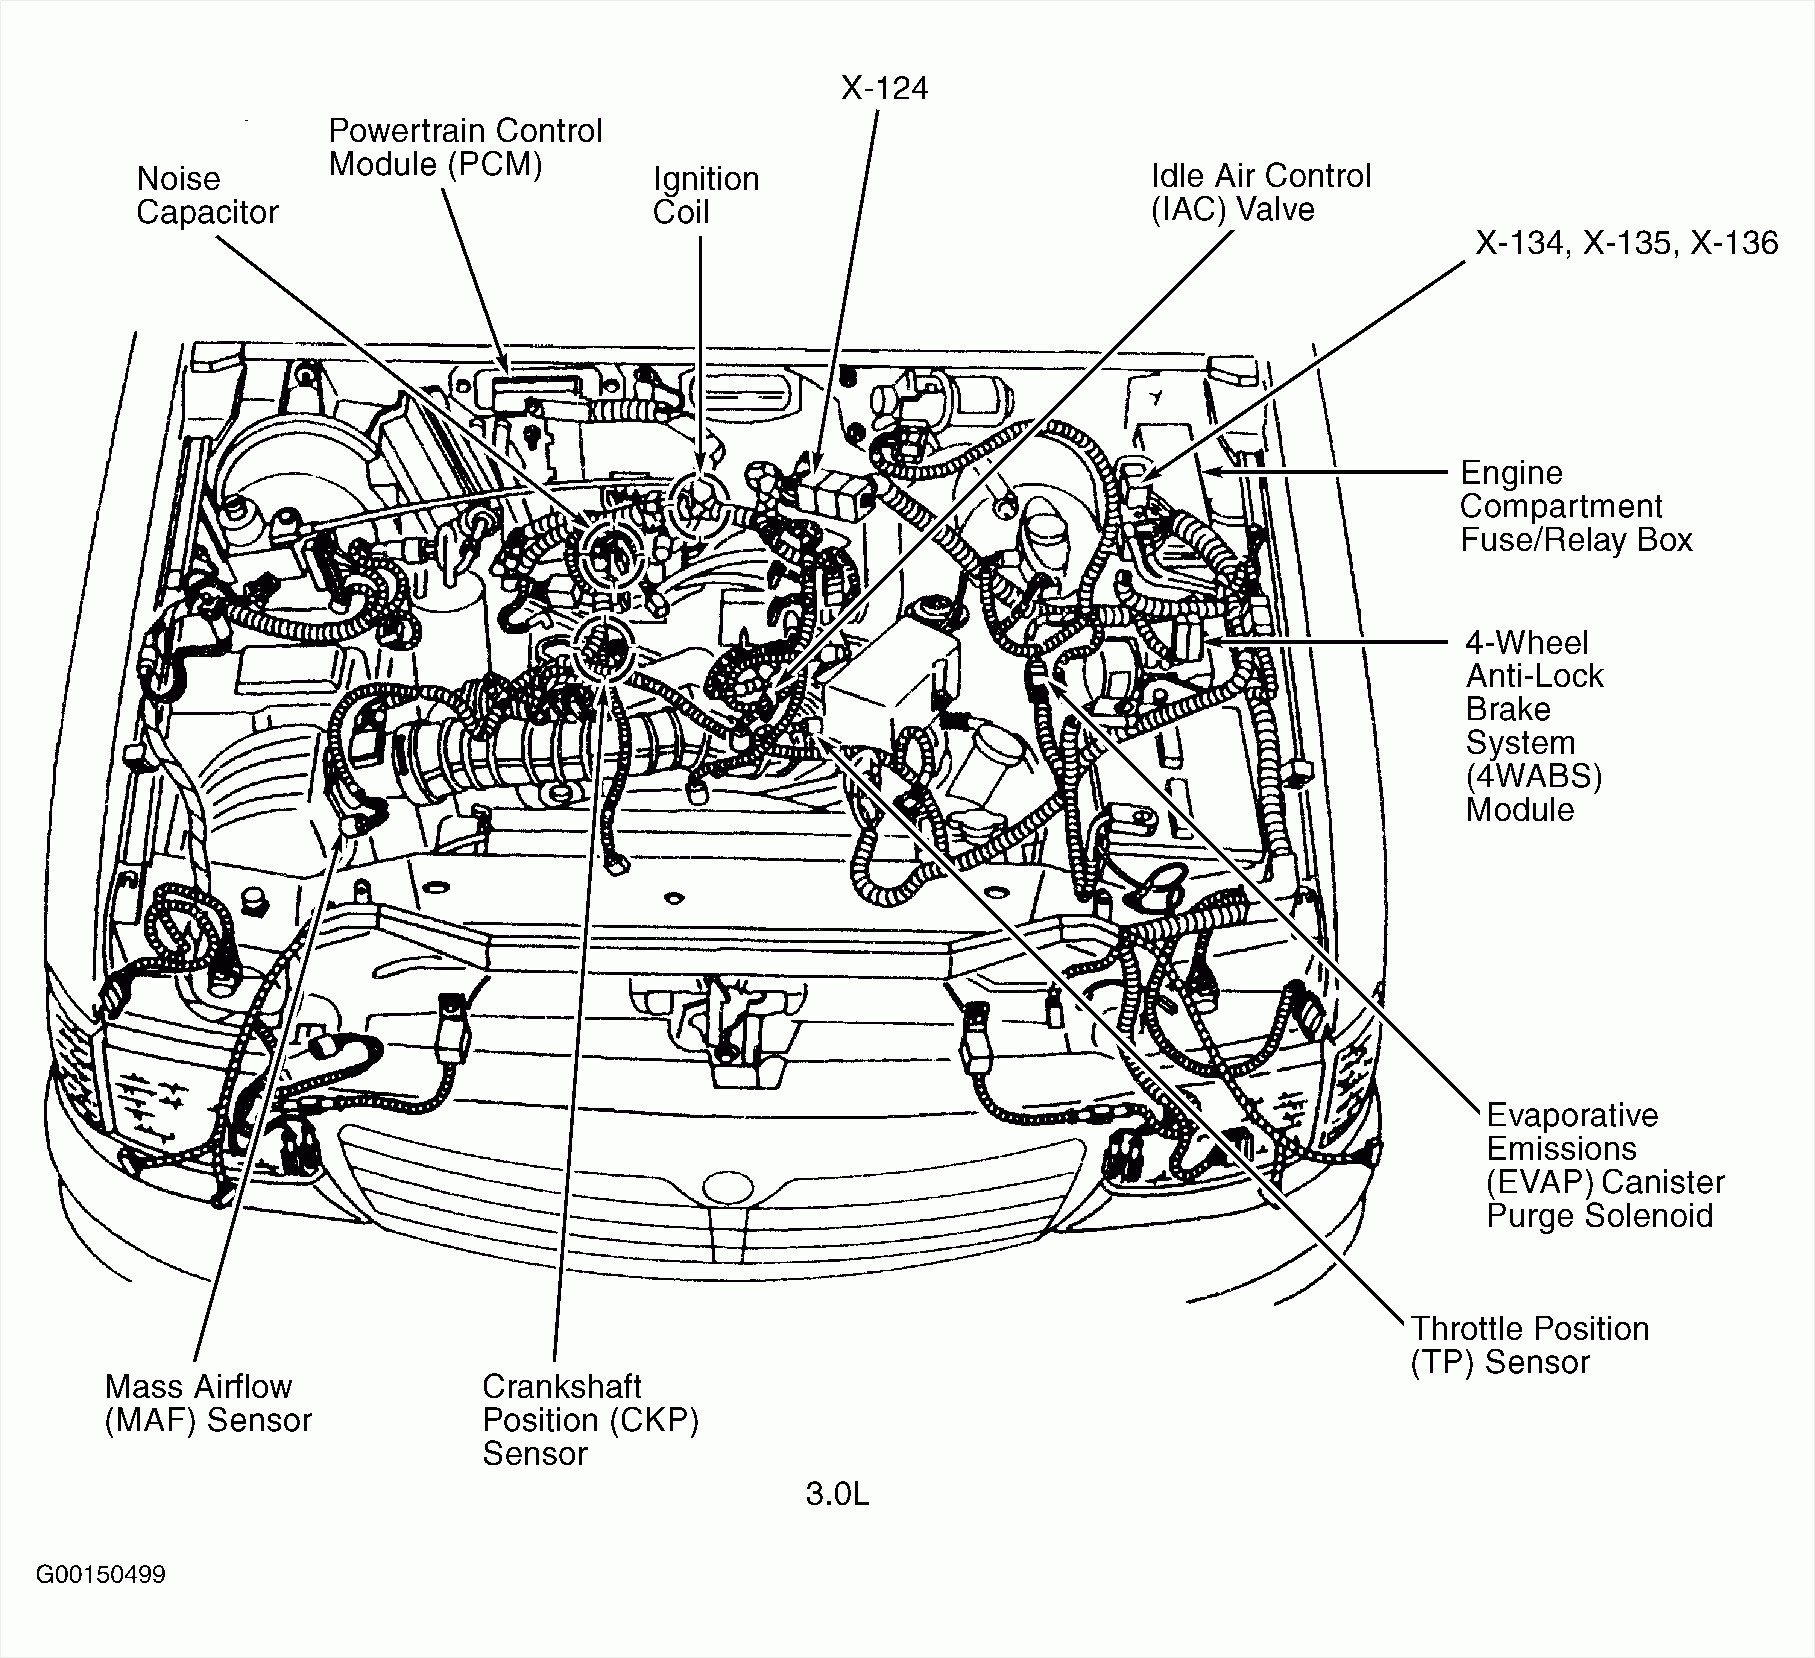 Jeep 2 0 Engine Diagram Experience Of Wiring For 2012 Compass 99 Jetta Home Rh 12 18 Medi Med Ruhr De Dodge Caliber 20 Patriot Problems